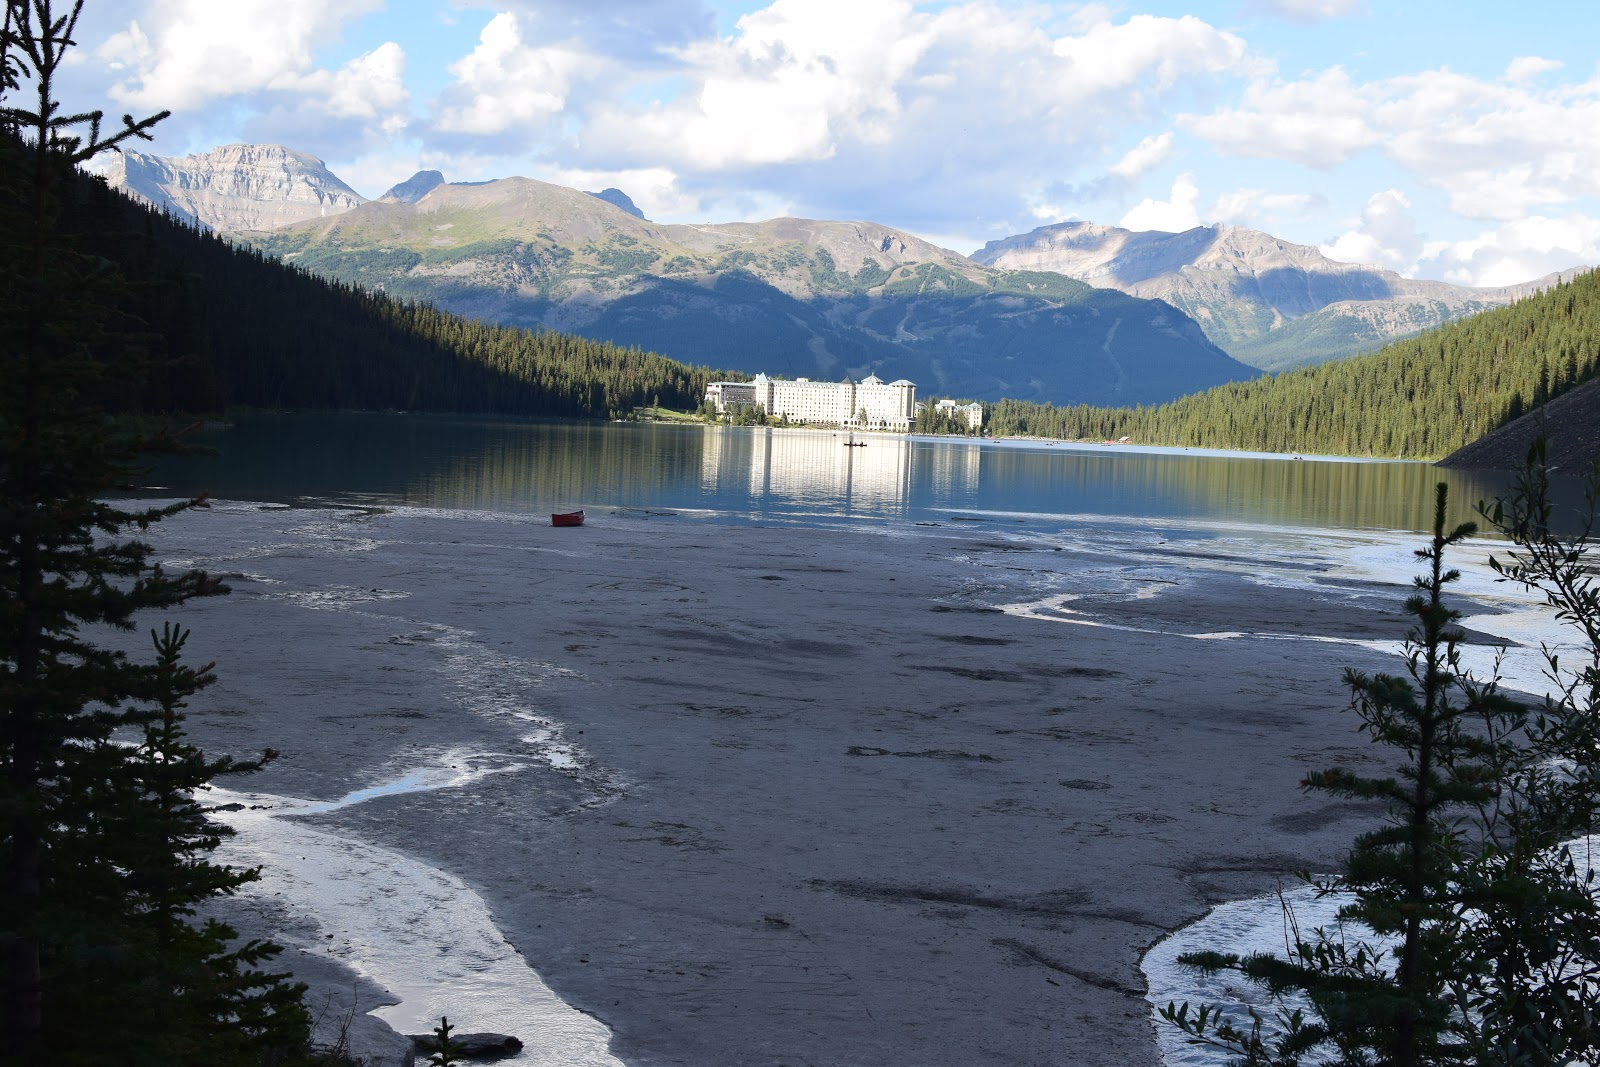 Chateau Lake Louise from the back side of the lake